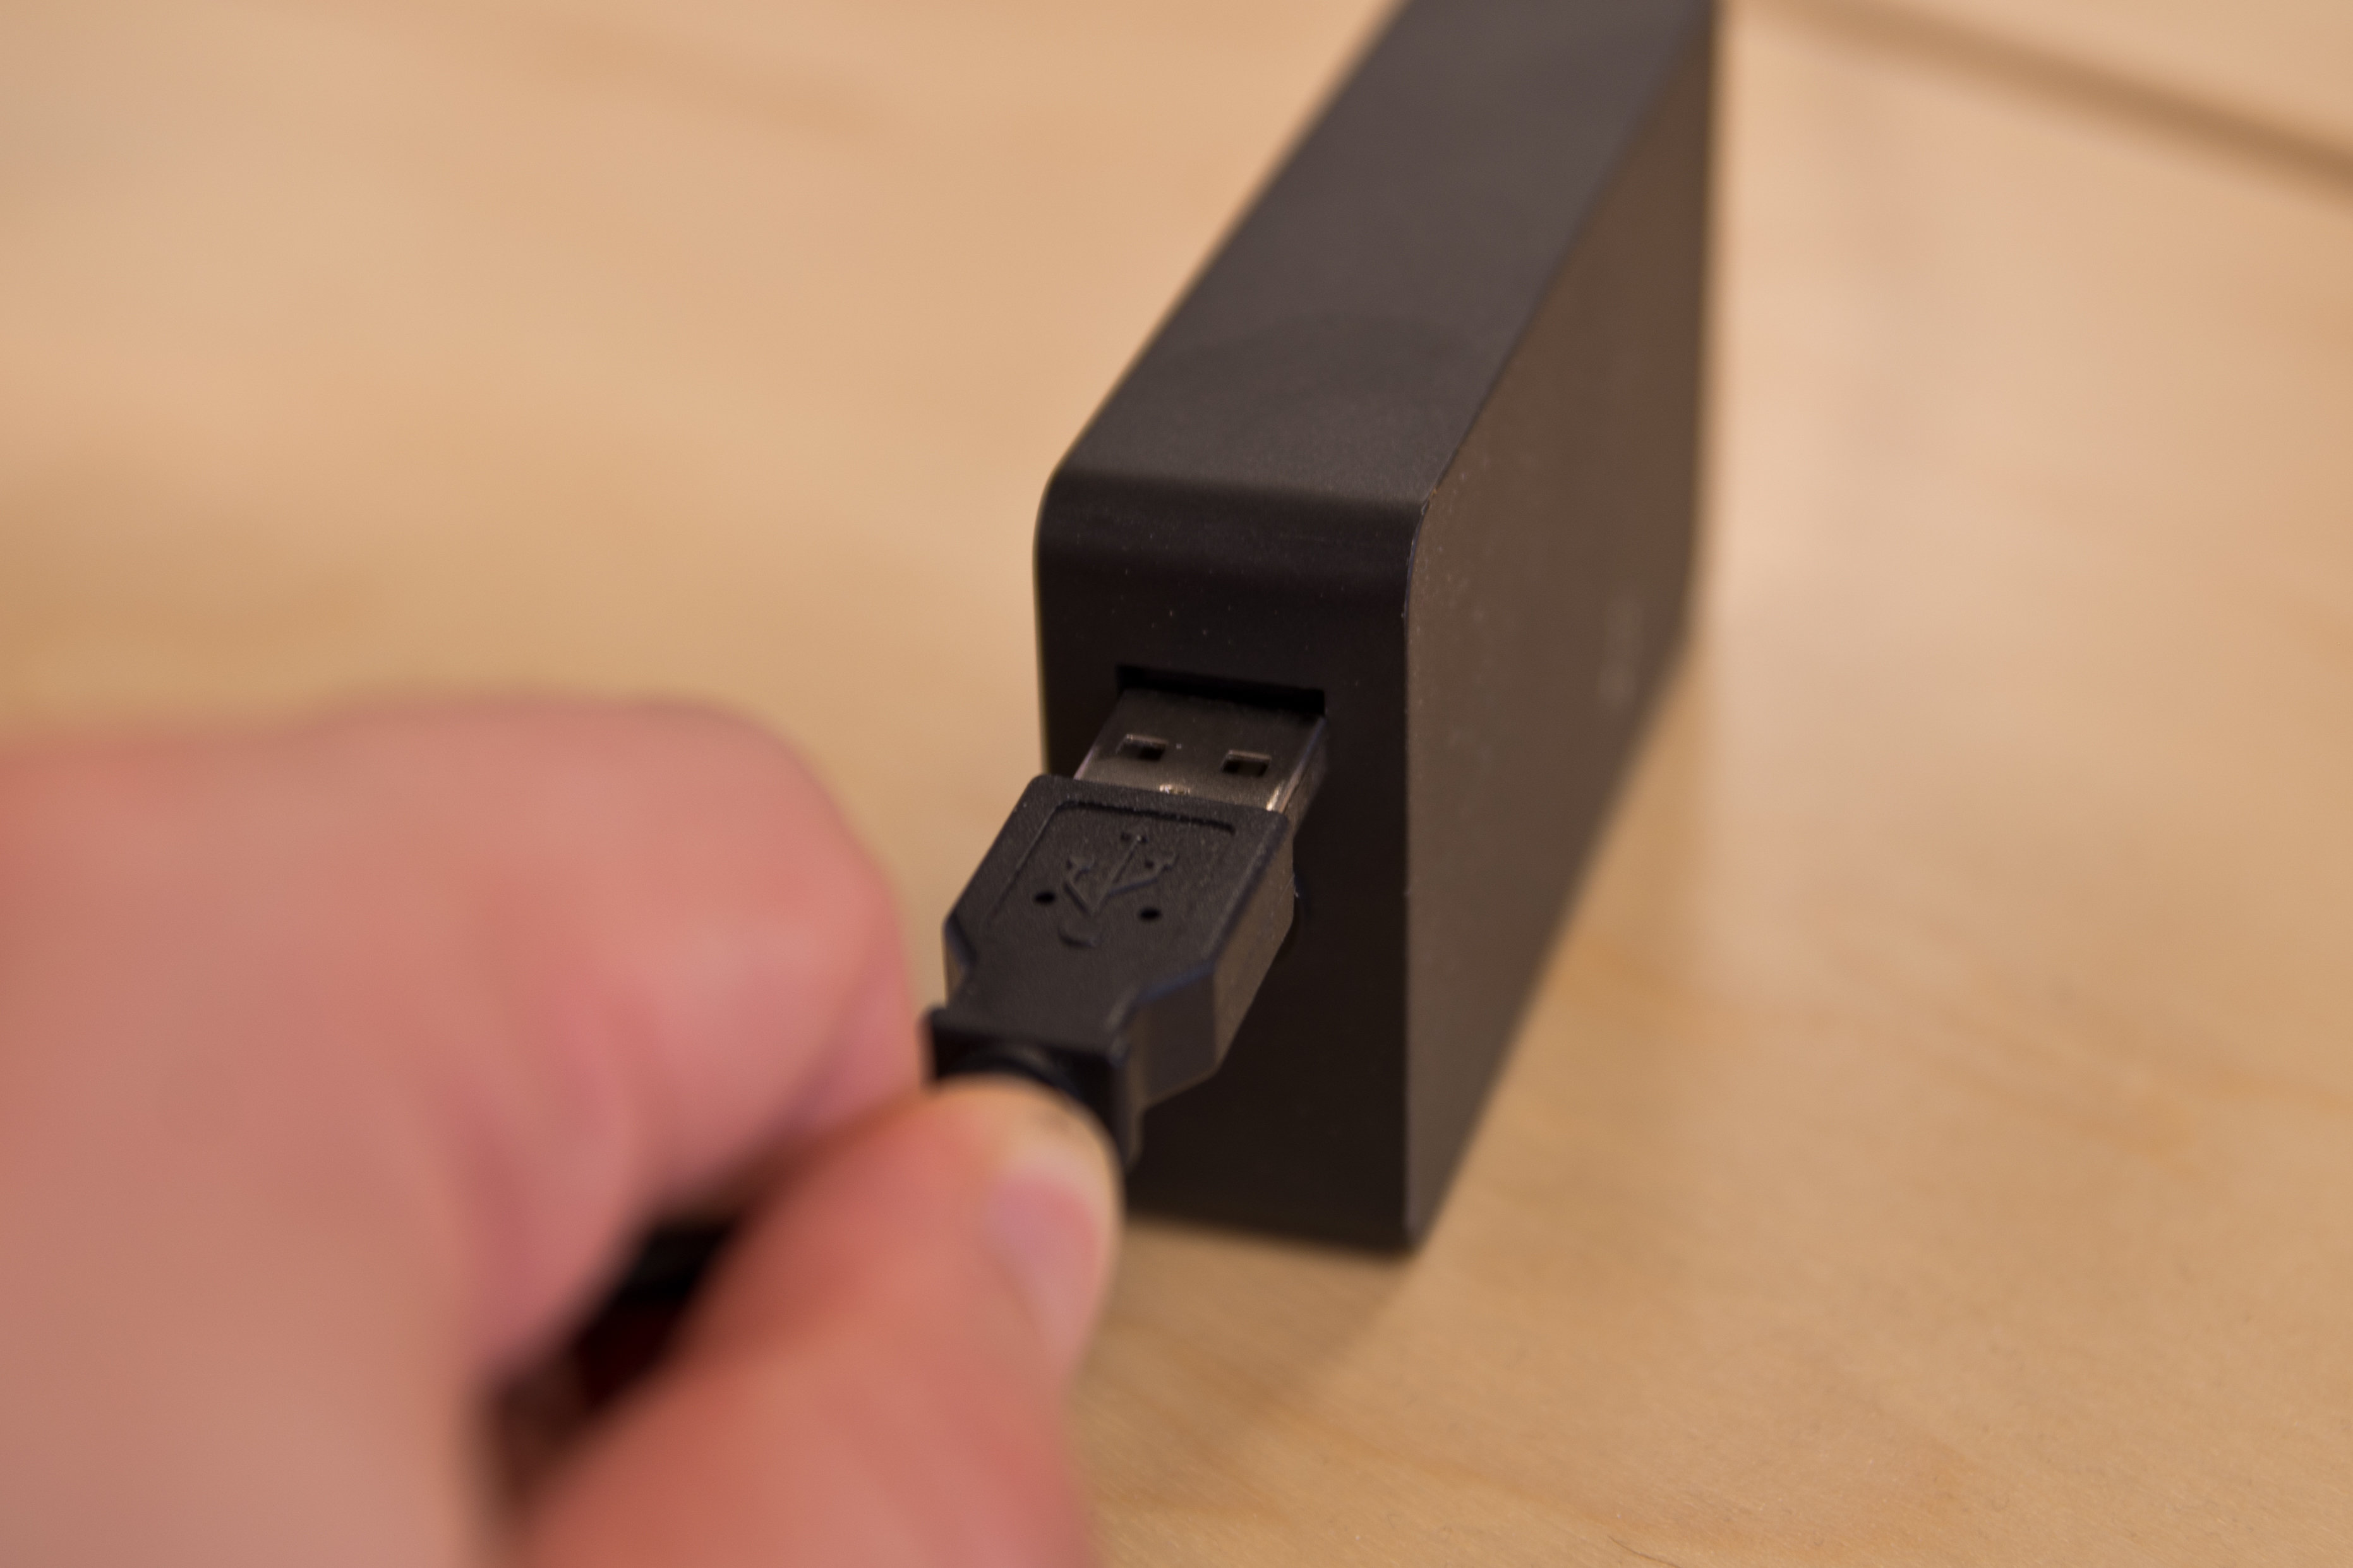 A closer look at the Microsoft Surface Pro 3's charger.